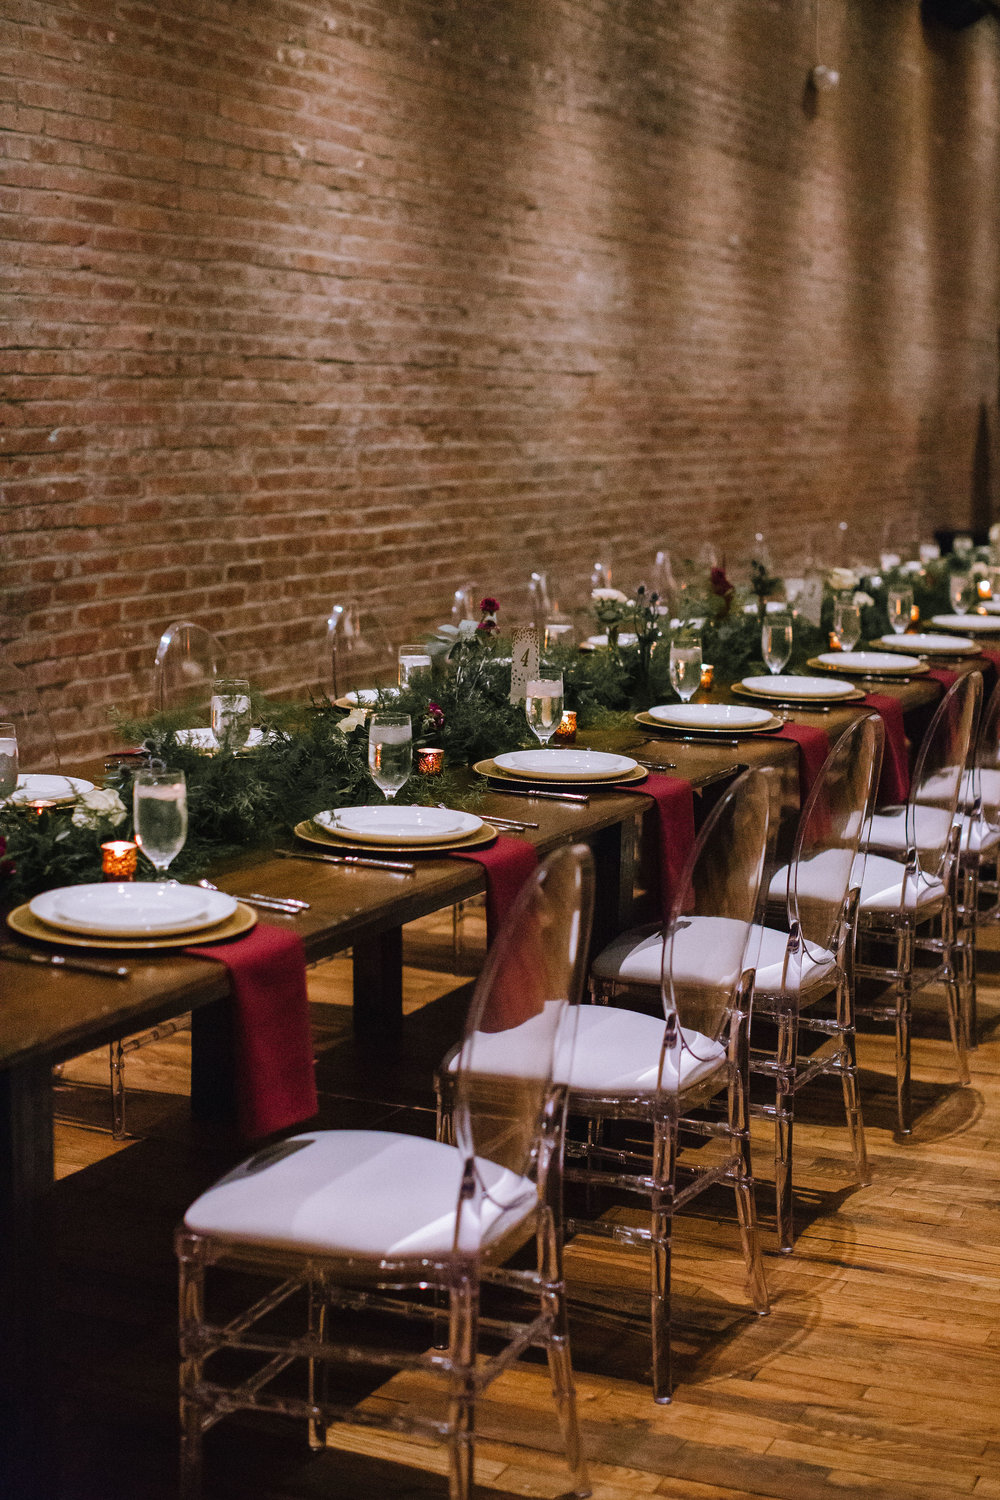 Wedding table setting and table decor with greenery and red and gold accents for Pittsburgh wedding at Studio Slate planned by Exhale Events. Find more wedding inspiration at exhale-events.com!